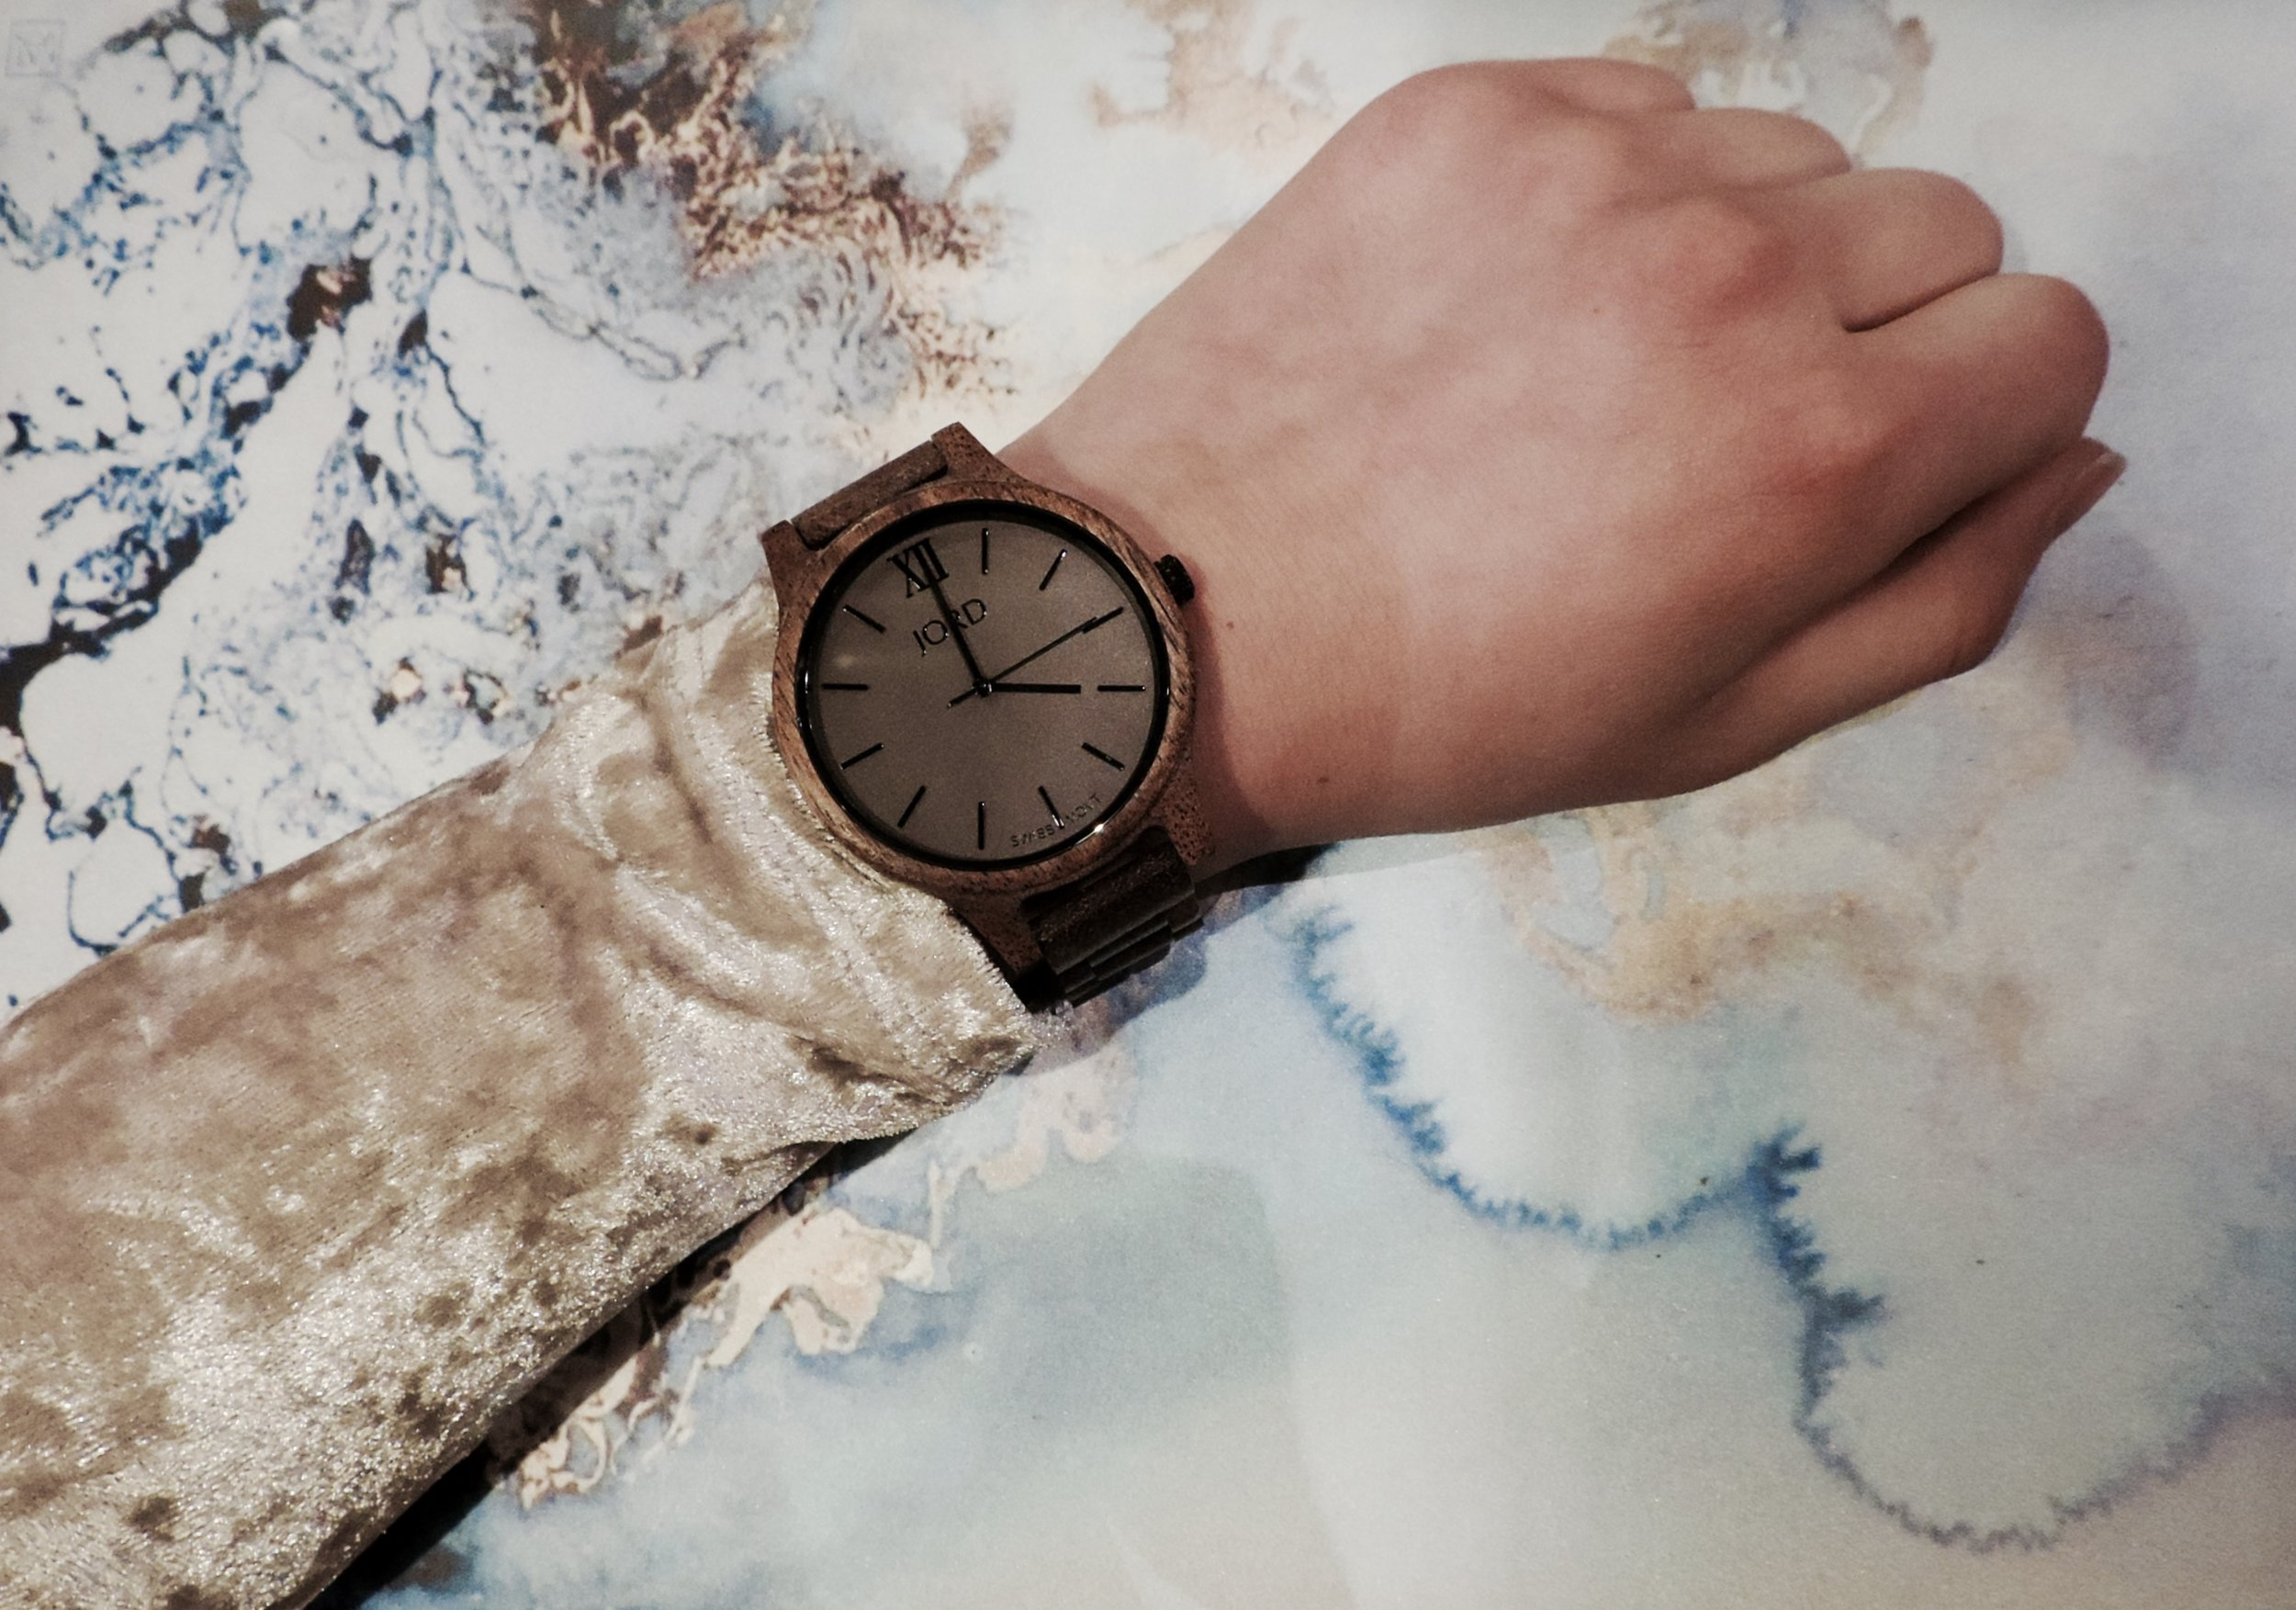 Isn't it the most beautiful watch ever?